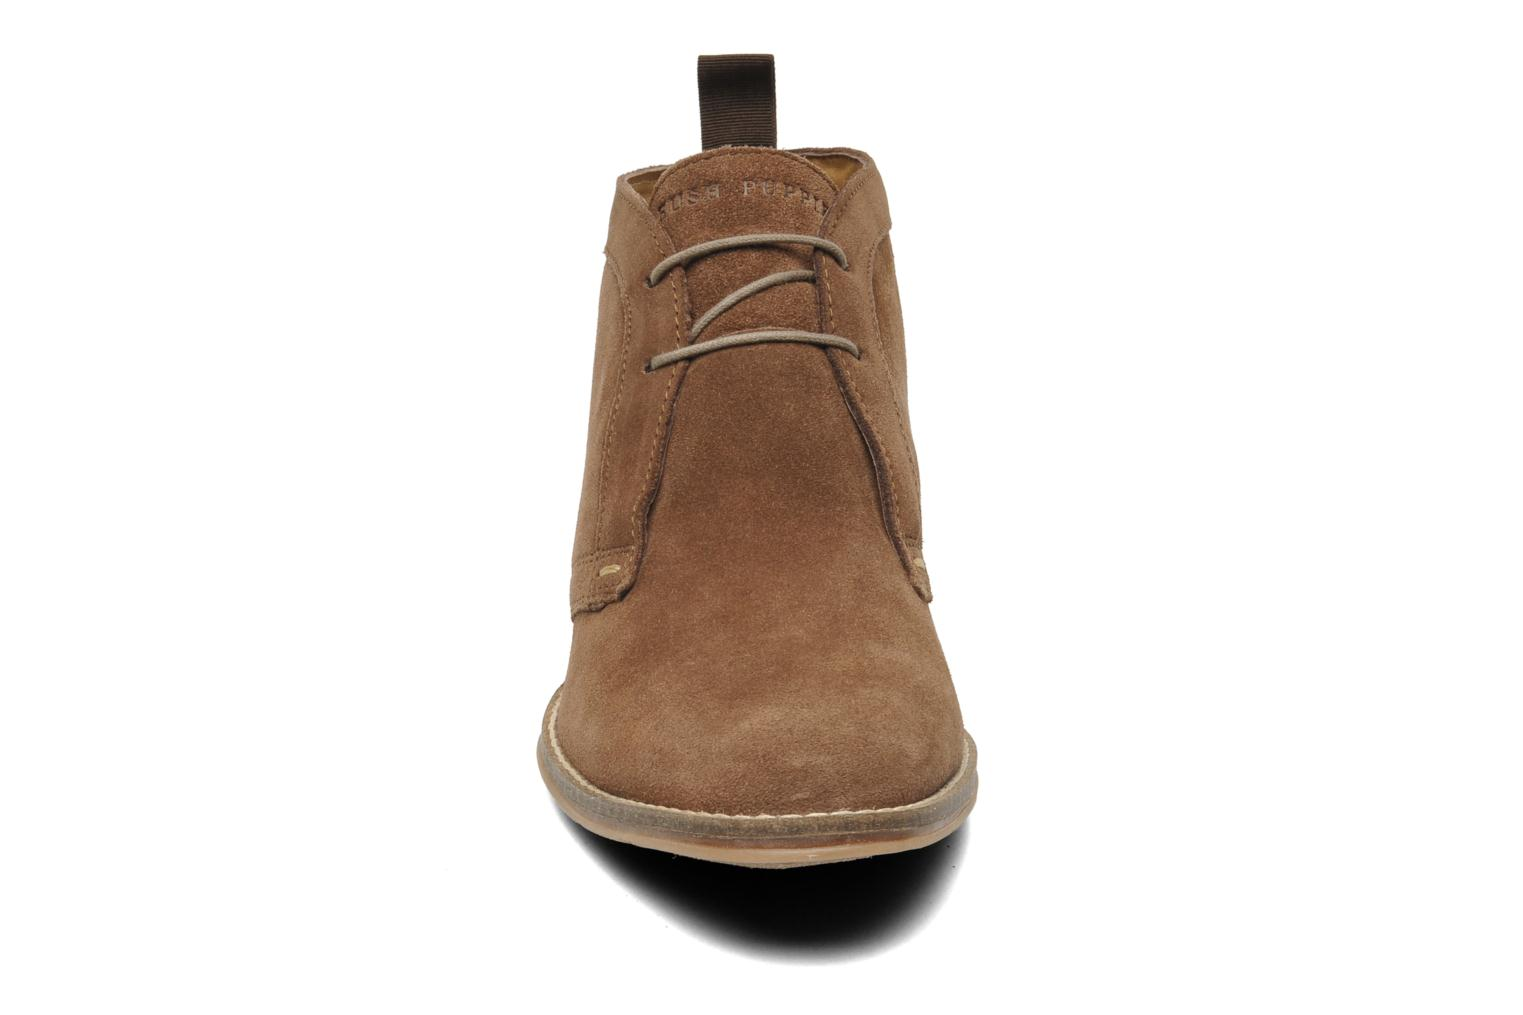 Style Chukka Brown Suede